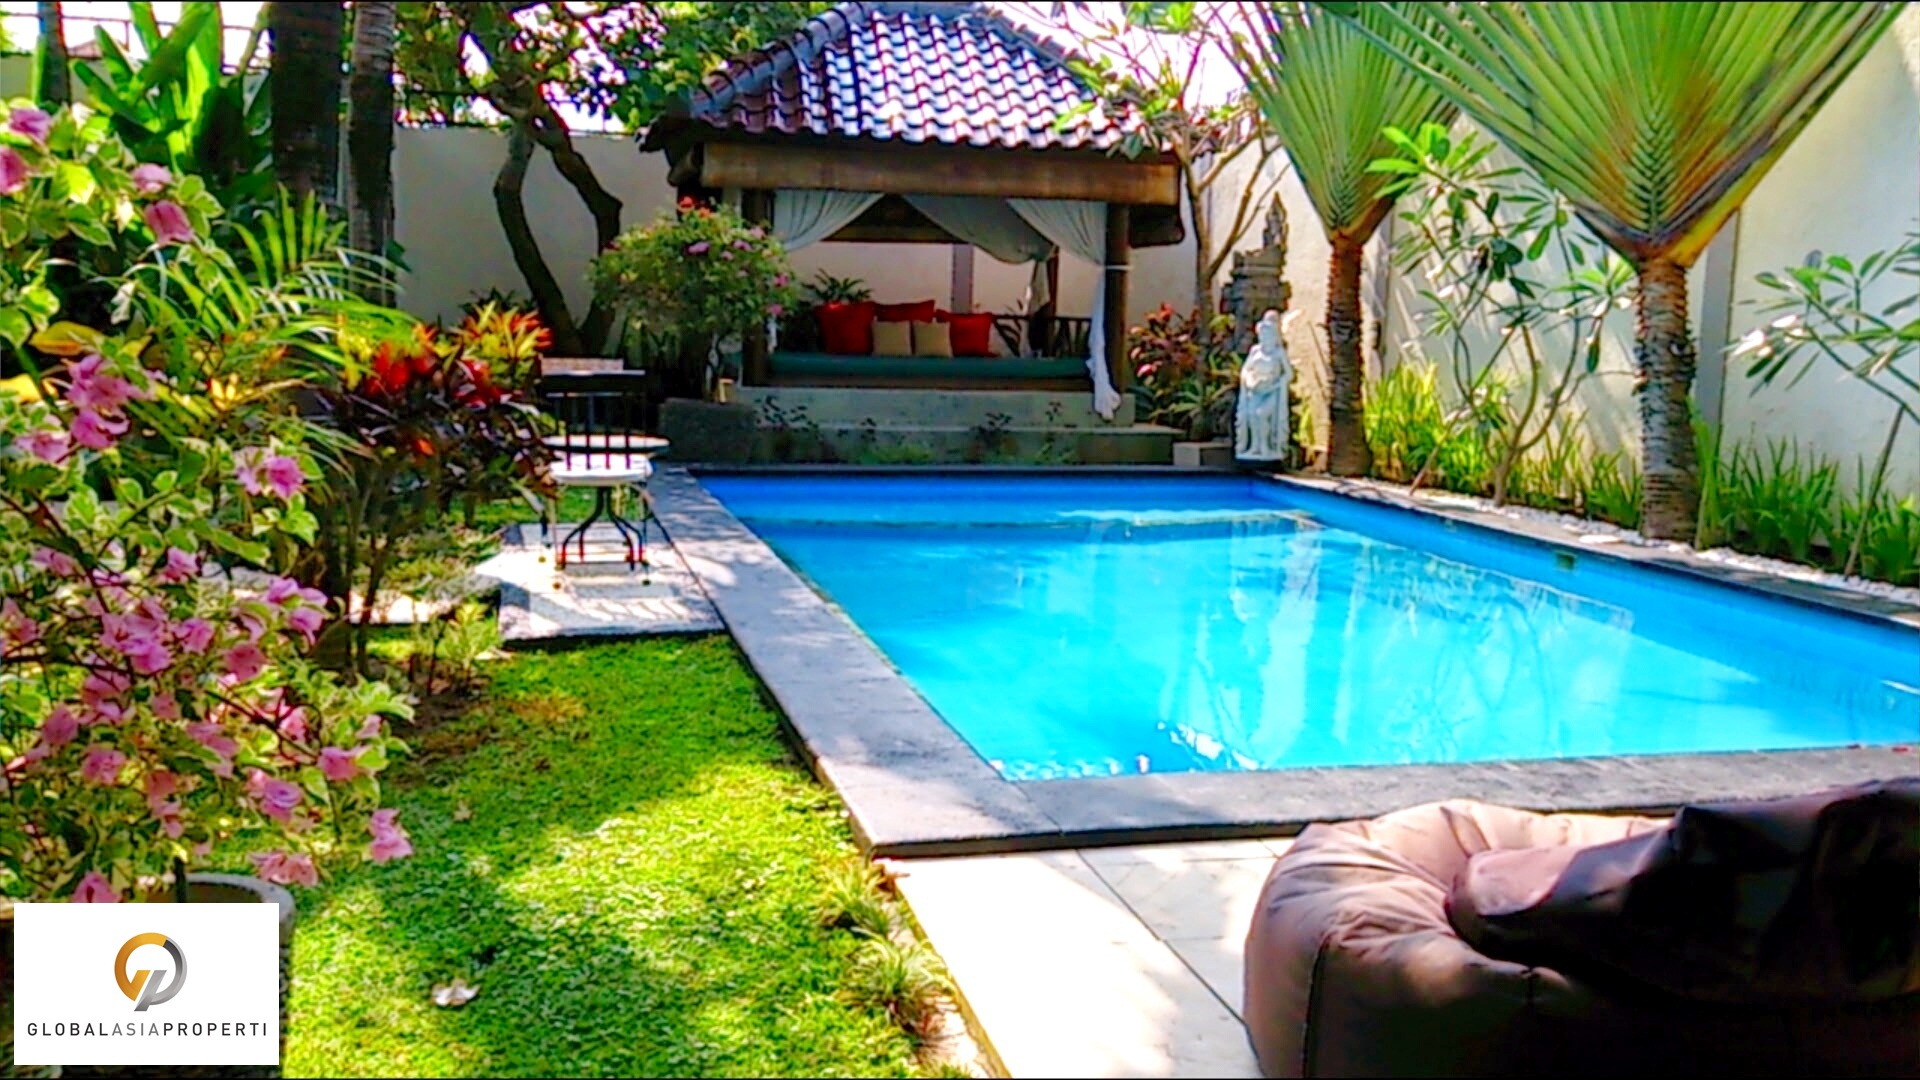 image - COZY NICE VILLA IN KUTA FOR LEASE